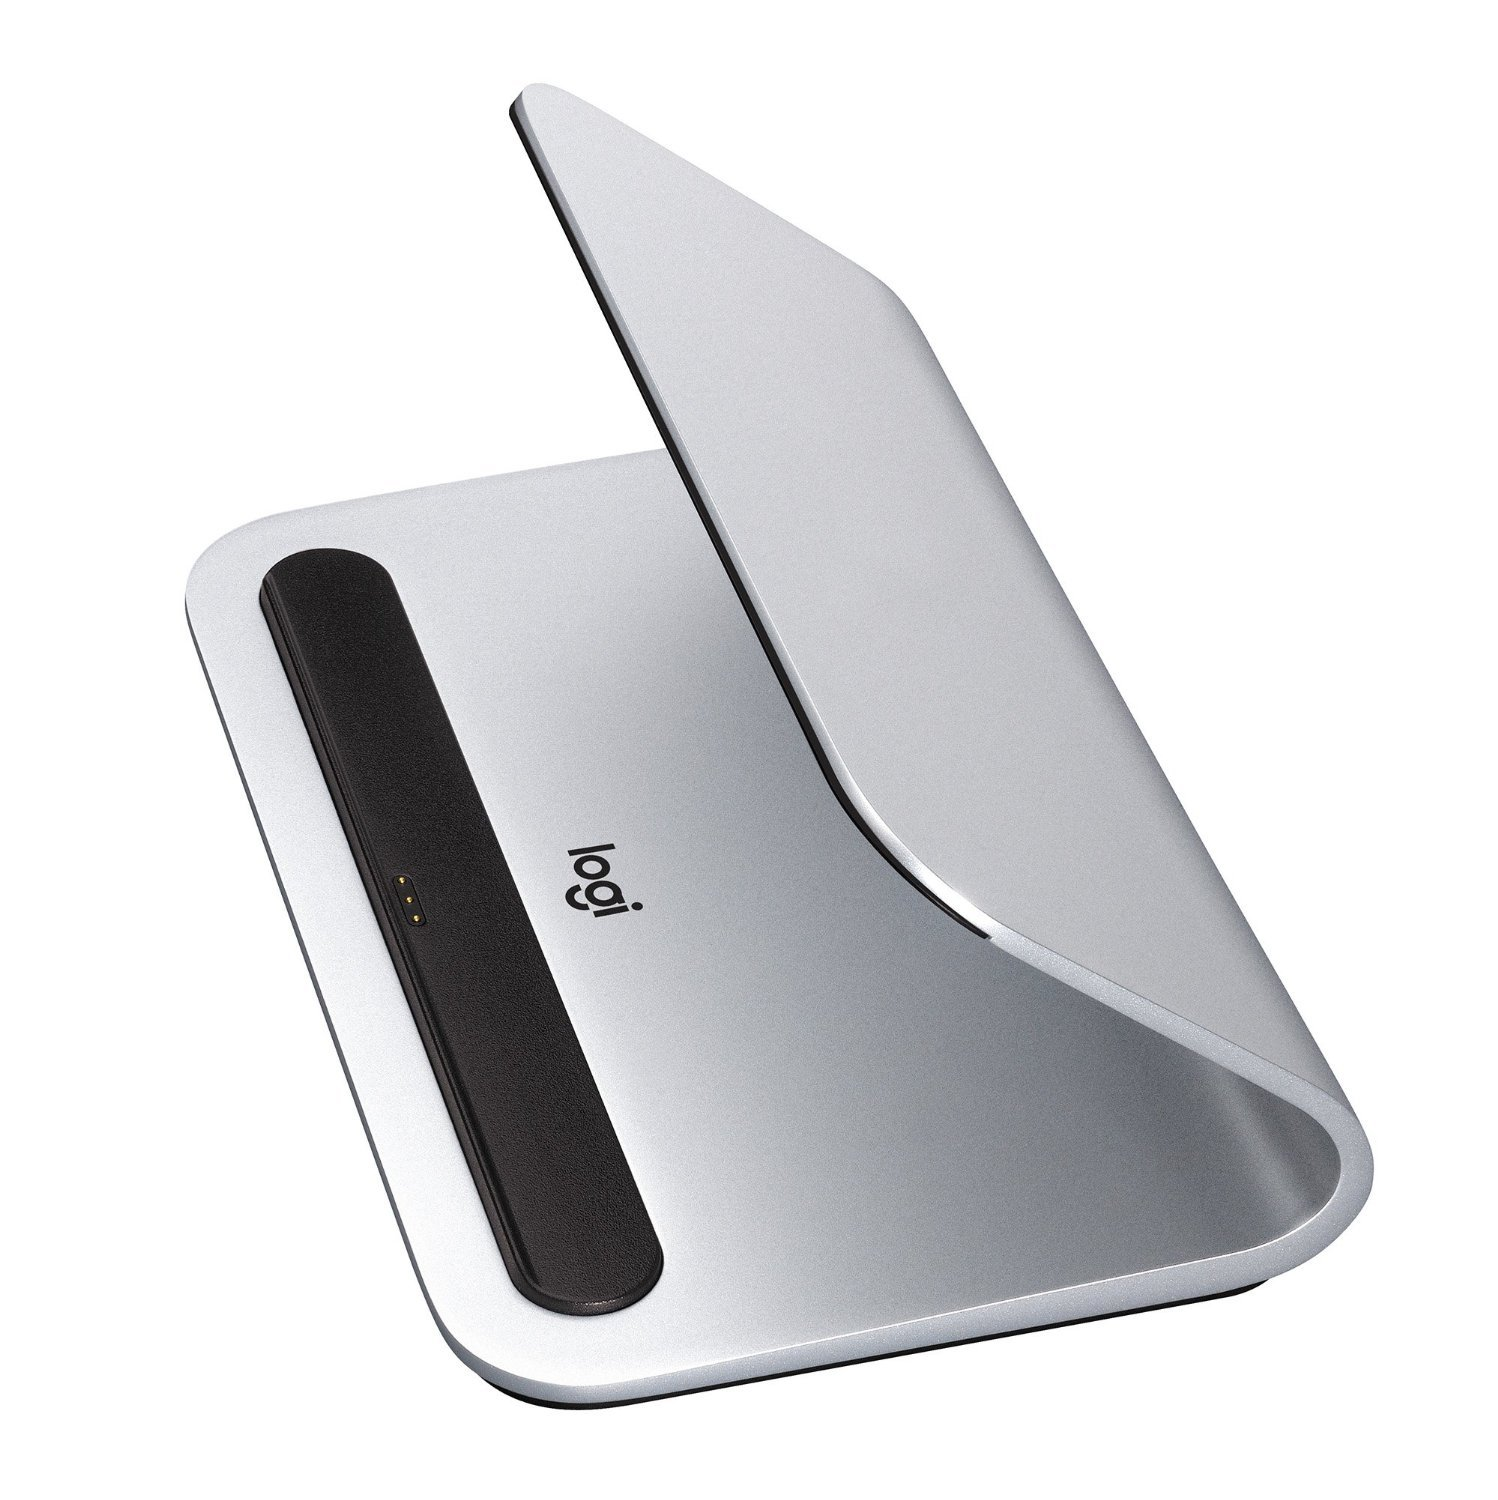 BASE Wireless Charging Stand with Smart Connector Technology for iPad, iPad Air and iPad Pro - SILVER - N/A - N/A - EMEA - NON APPLE